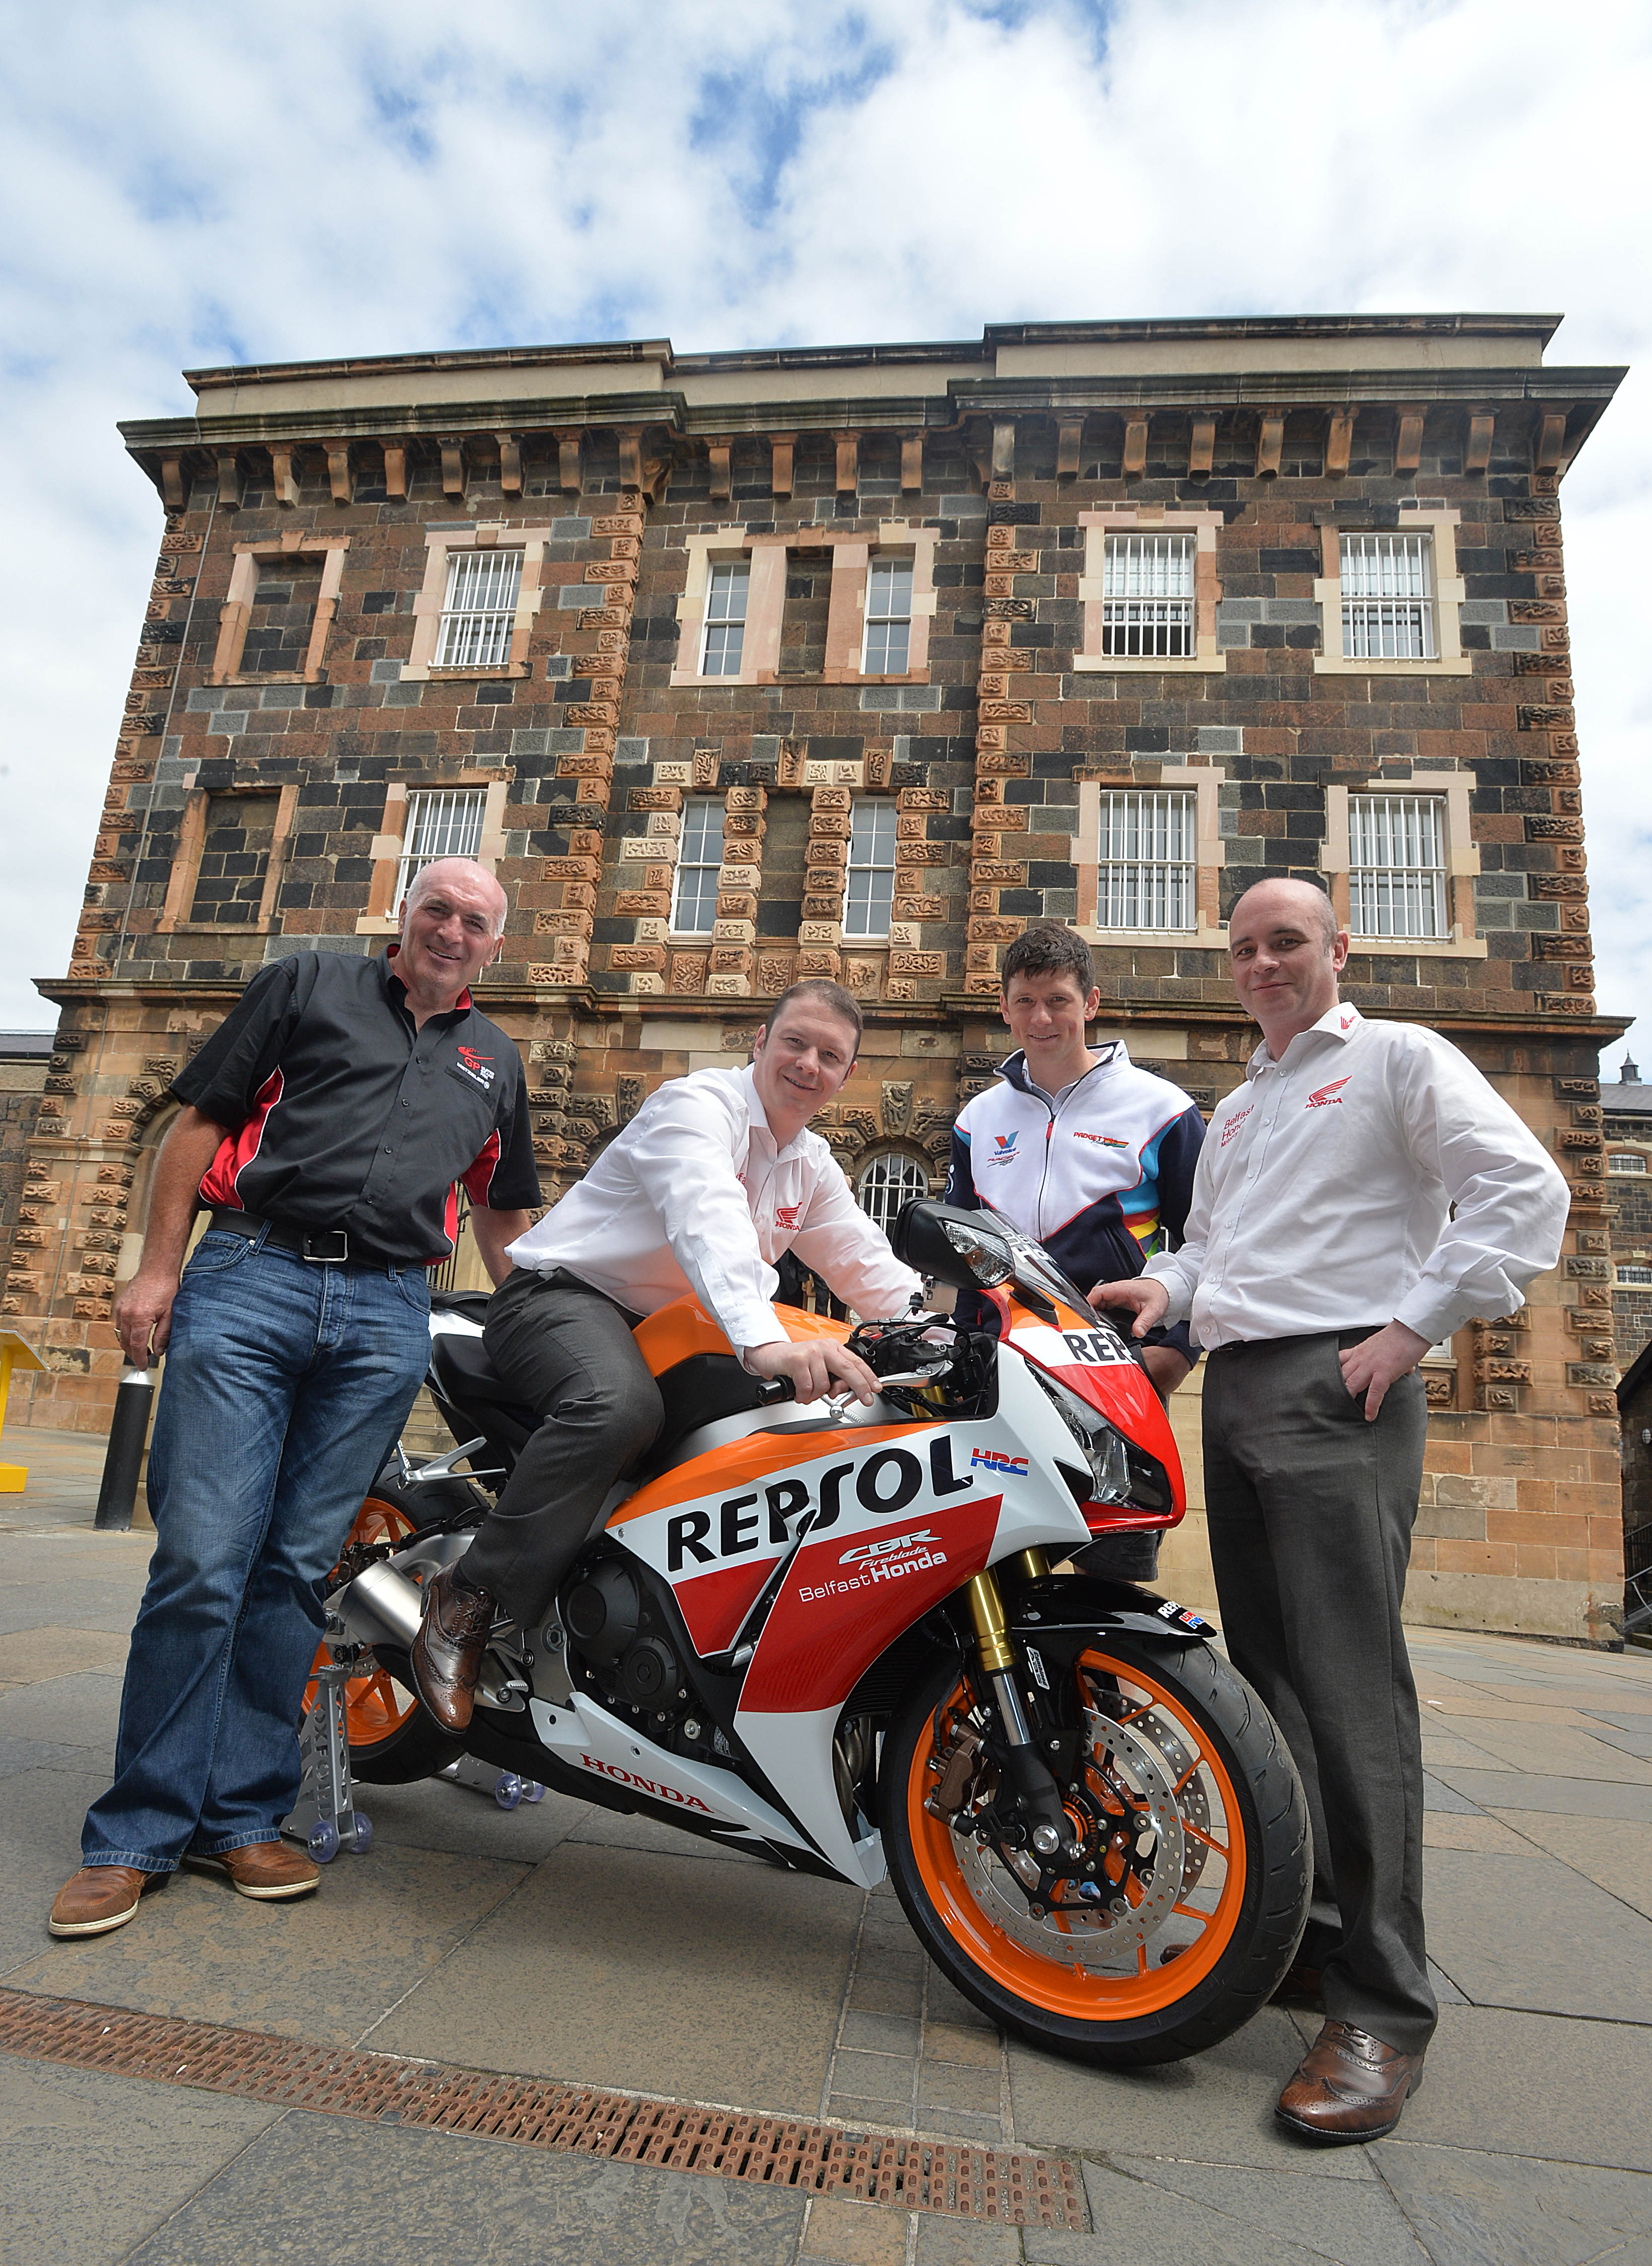 belfast honda joins forces with the metzeler ulster grand prix to